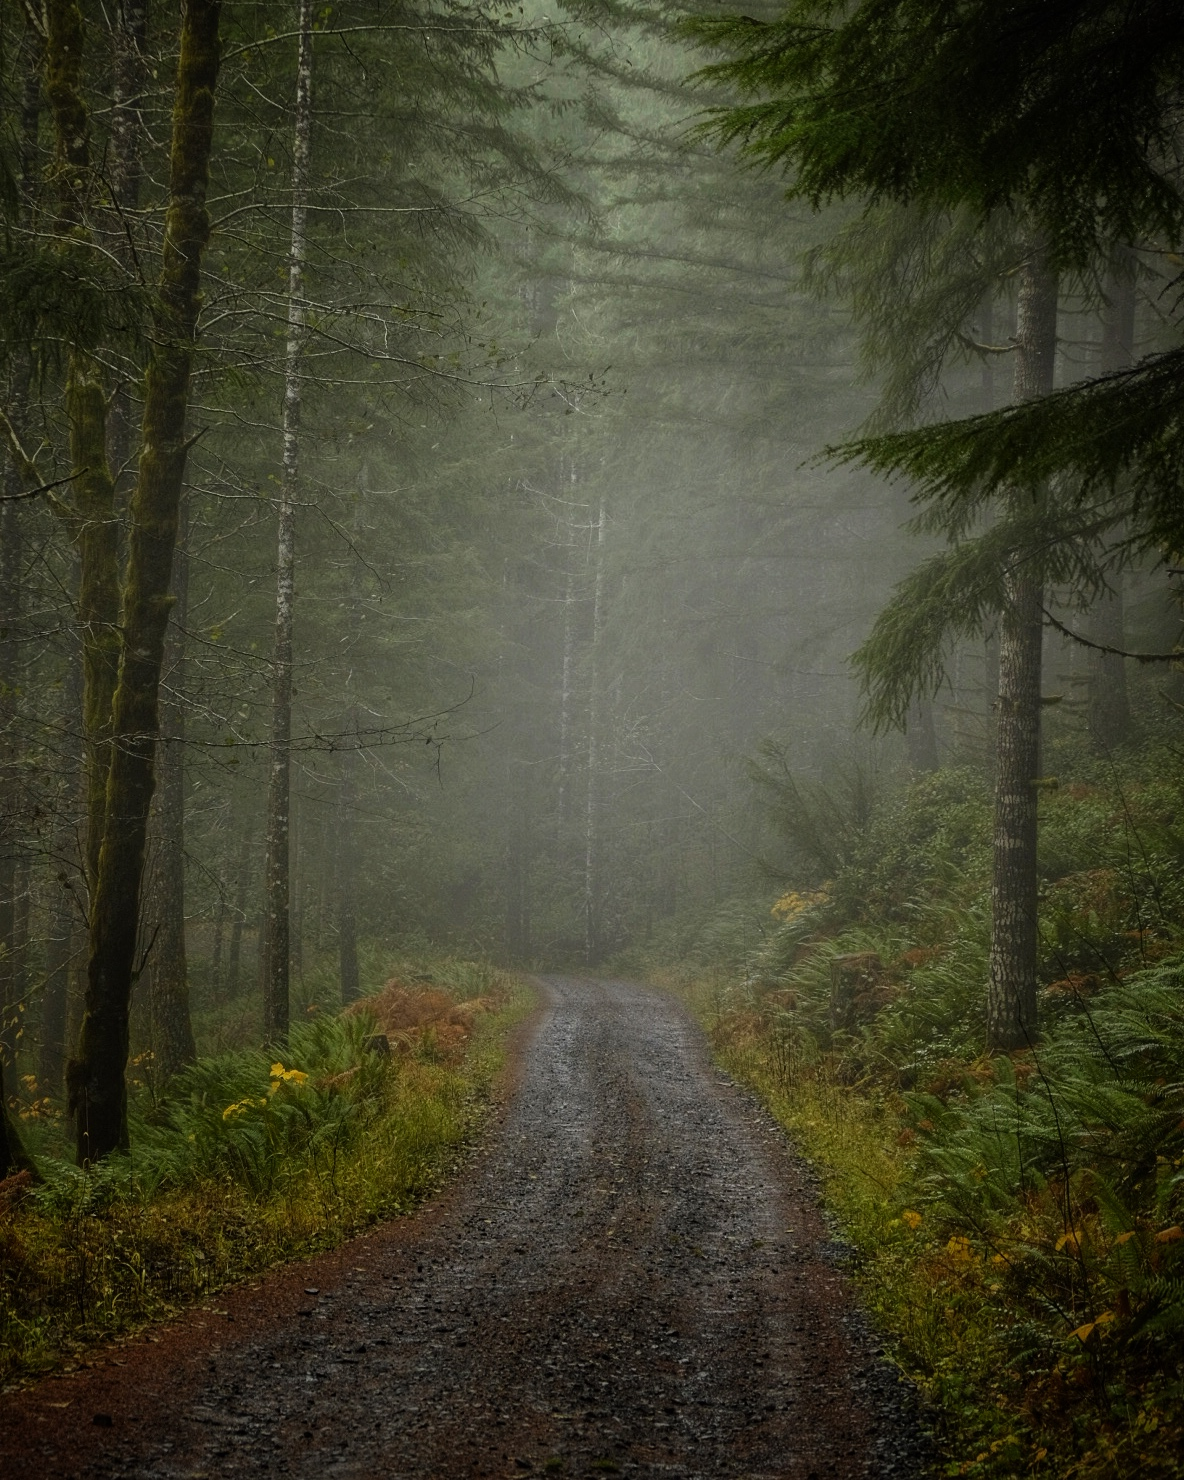 Misty road in Tillamook State Forest